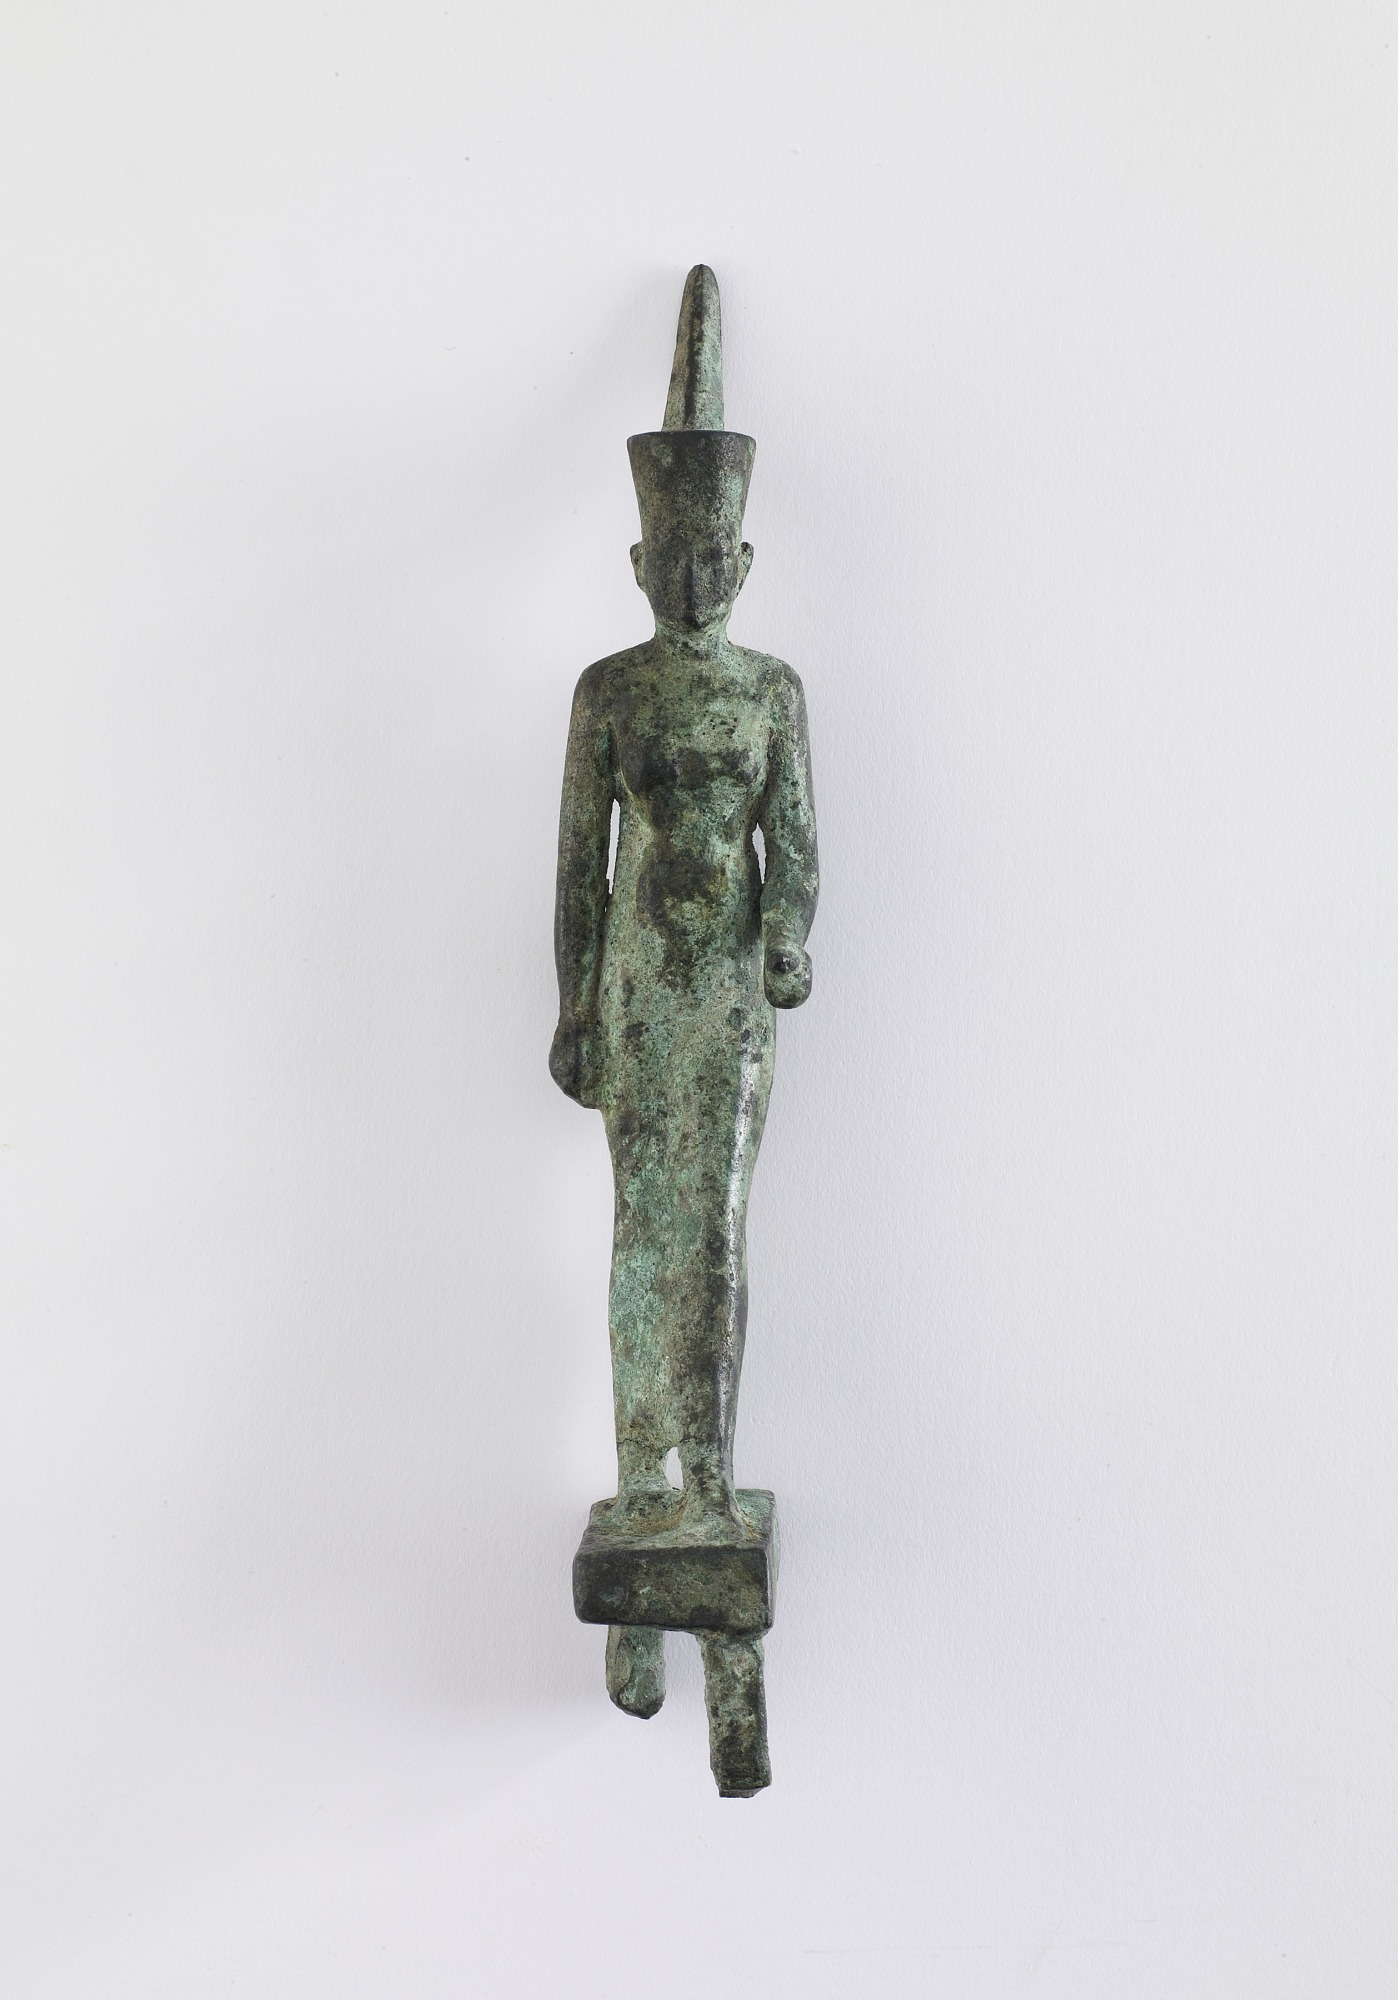 Figurine of the goddess Neith